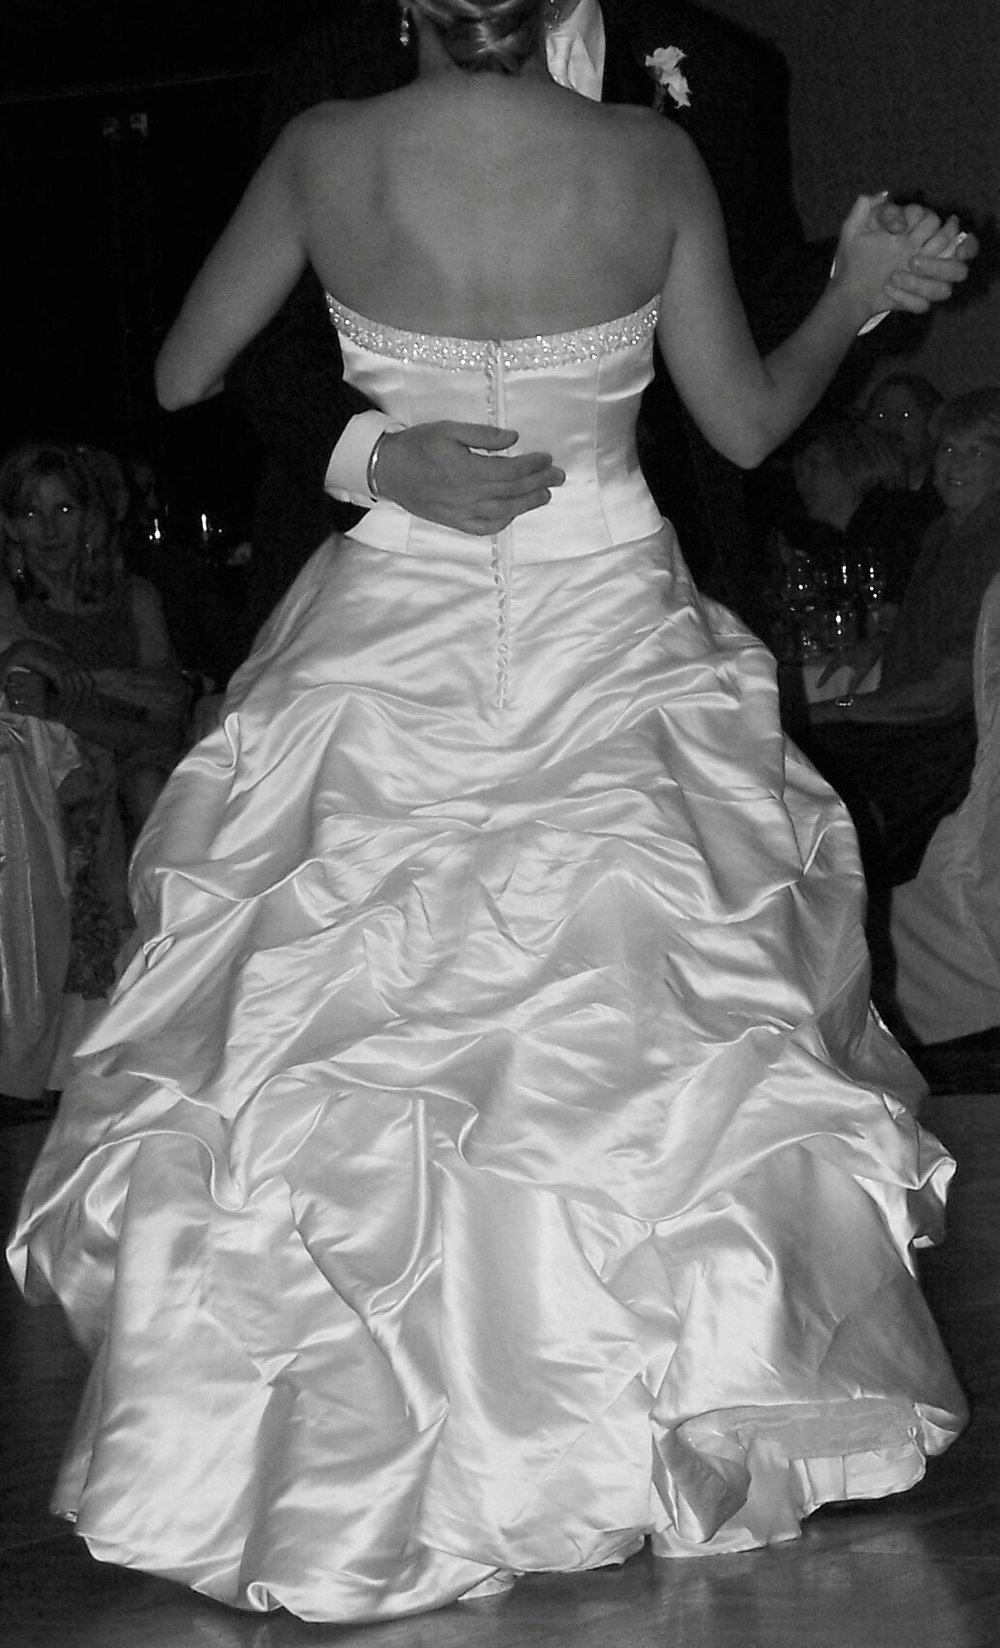 Allison & James' first dance at 7:53pm on September 15, 2007 (digital photo embeds it LOL)